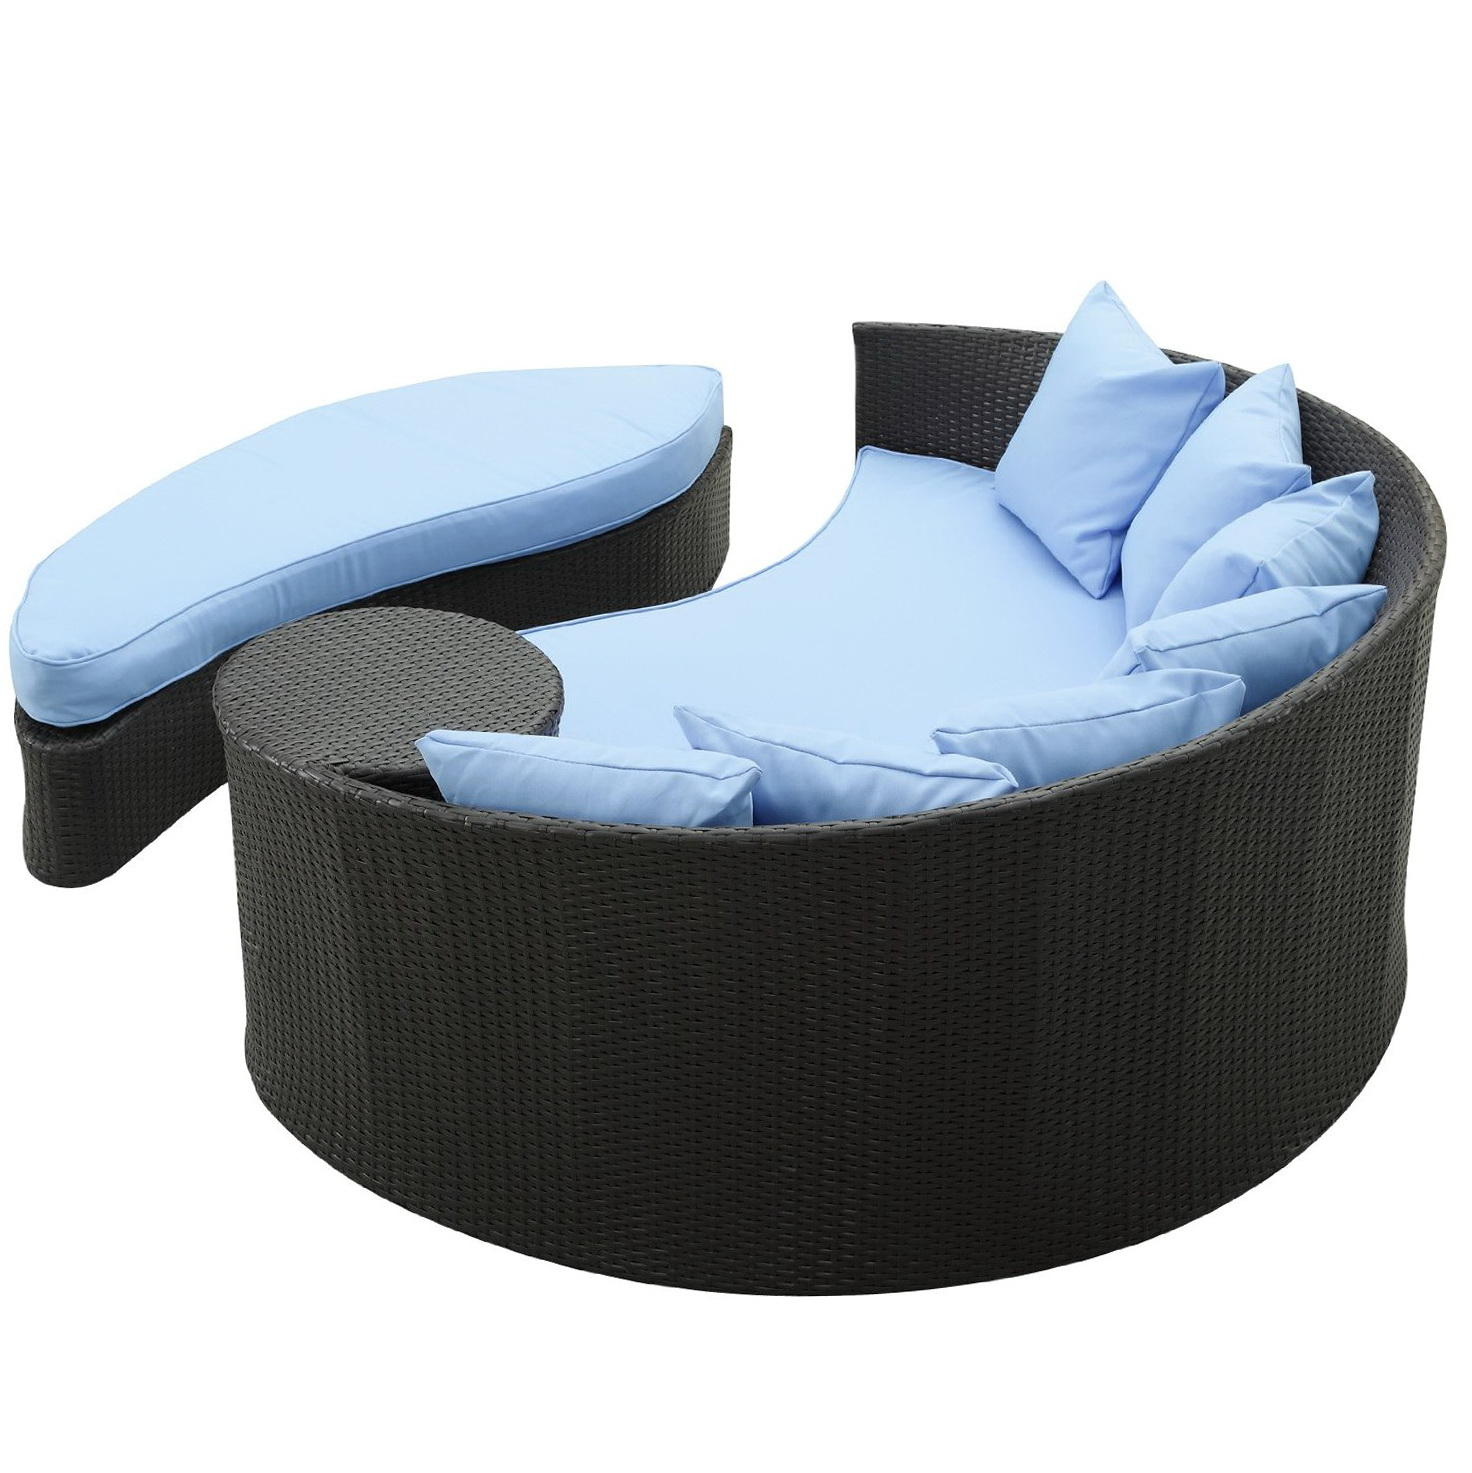 Outdoor Daybed Cushions For Sale